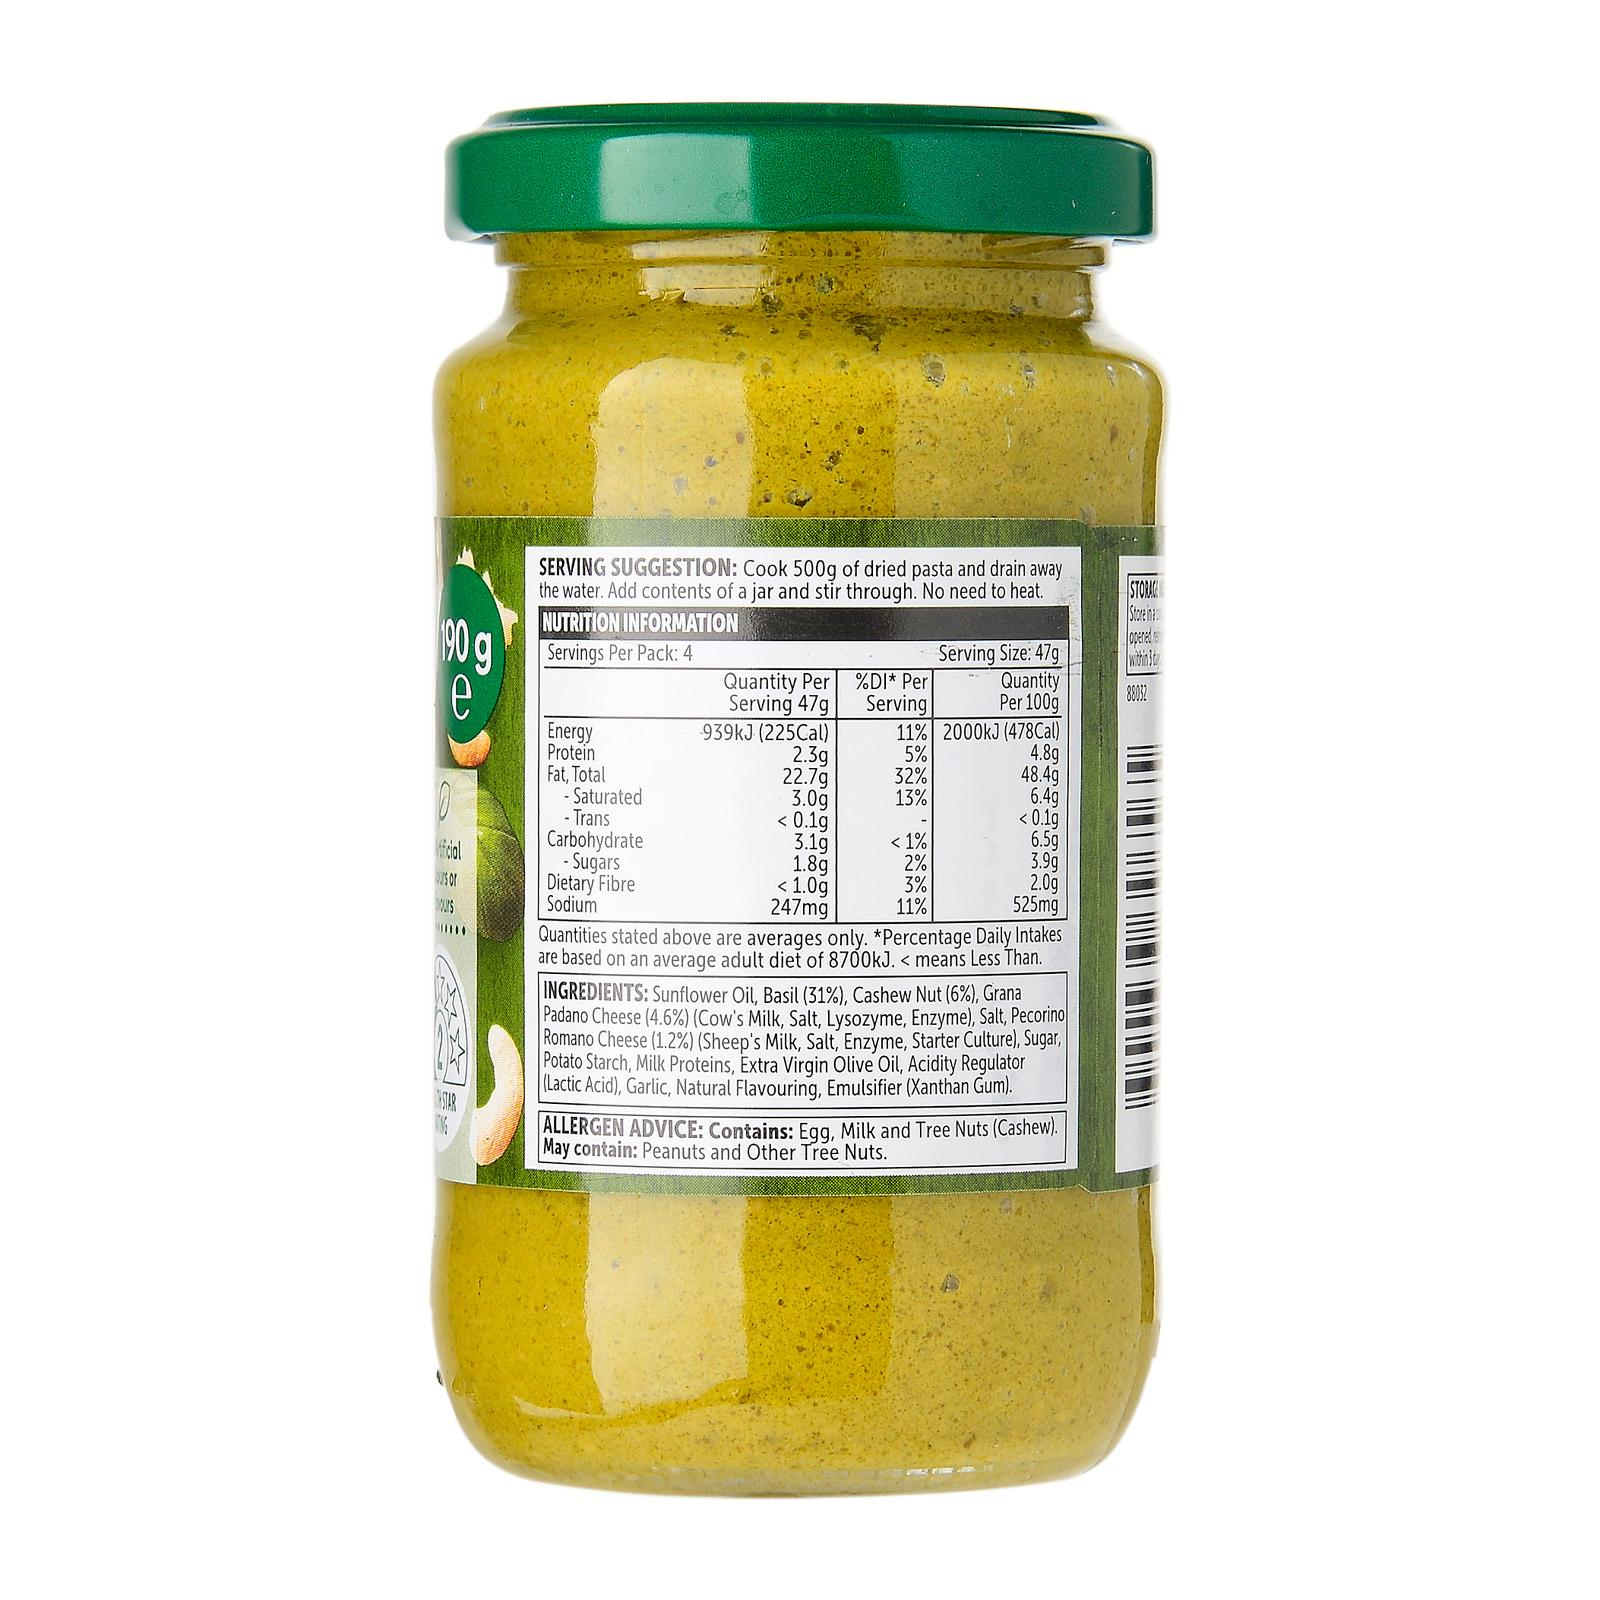 Woolworths Pesto Basil 190g Buy Sell Online Pasta Sauce With Cheap Price Lazada Singapore